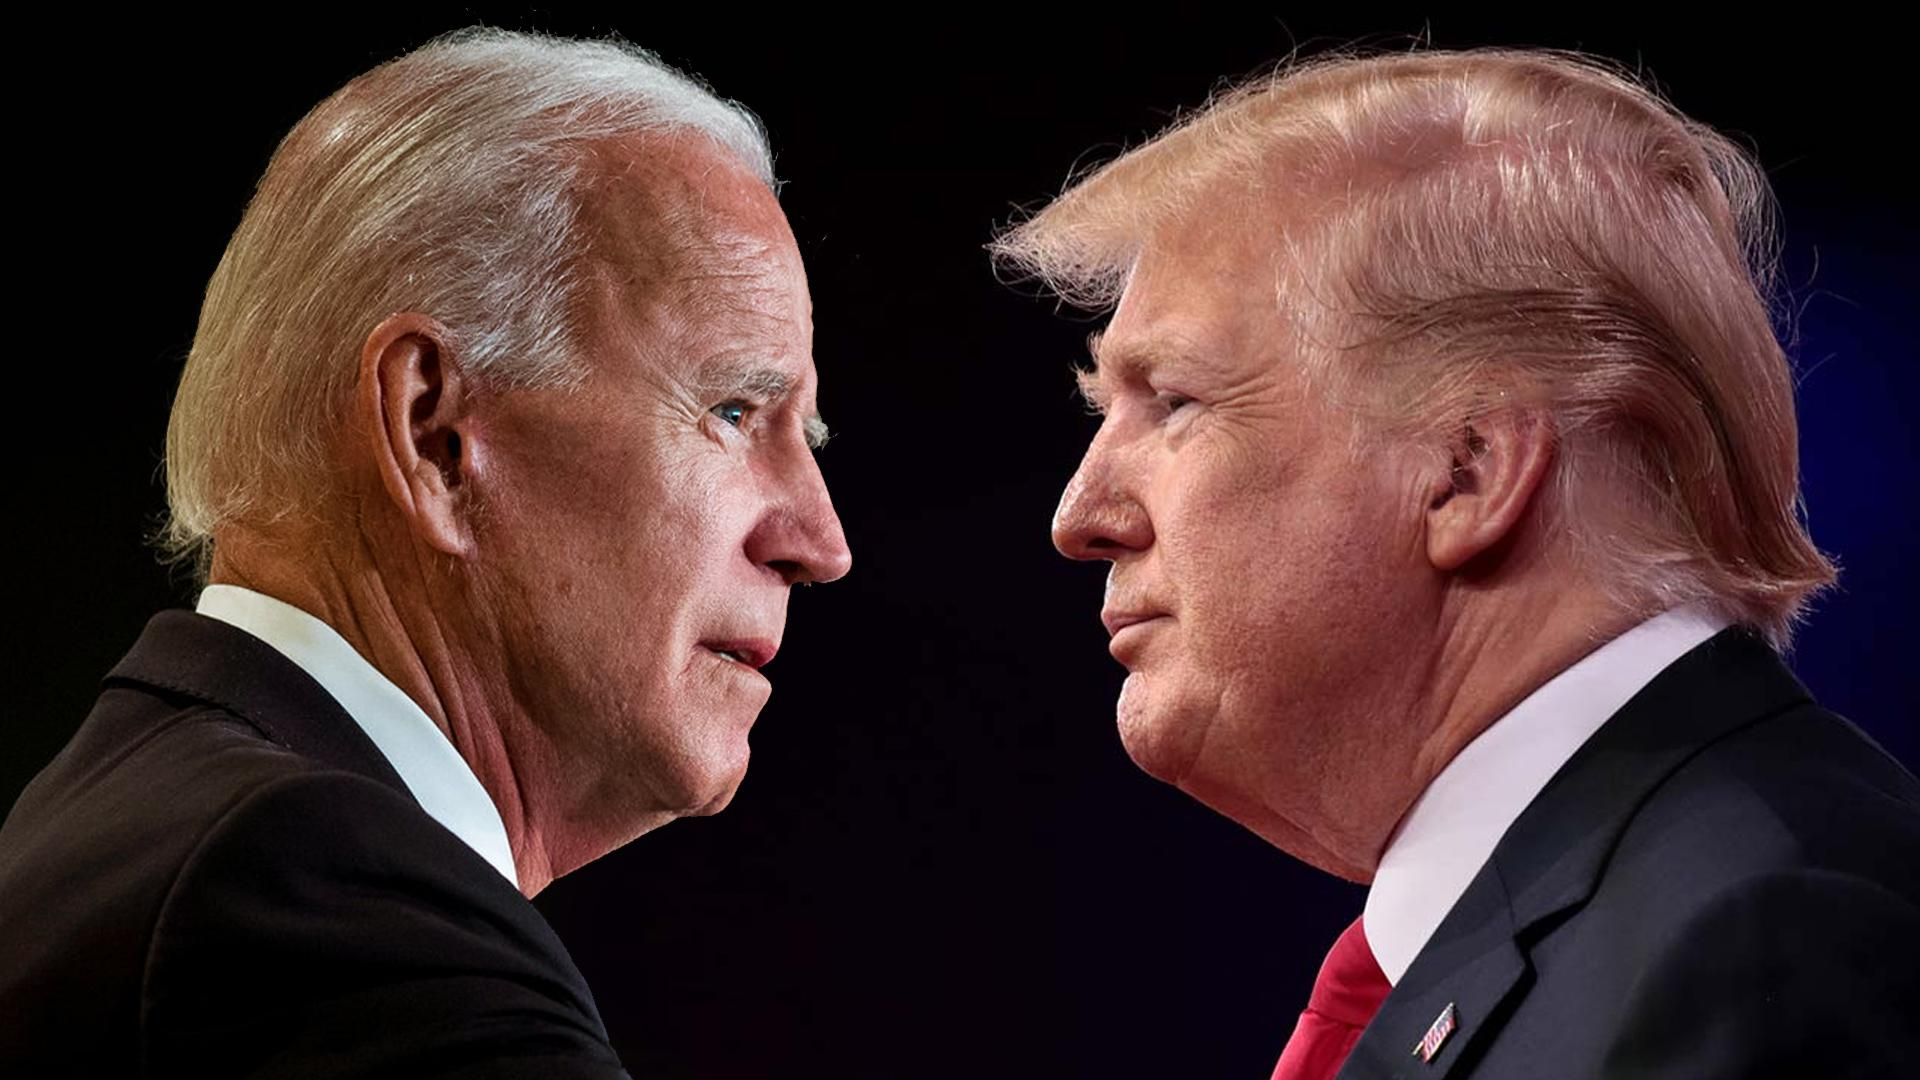 Trump vs Biden debate